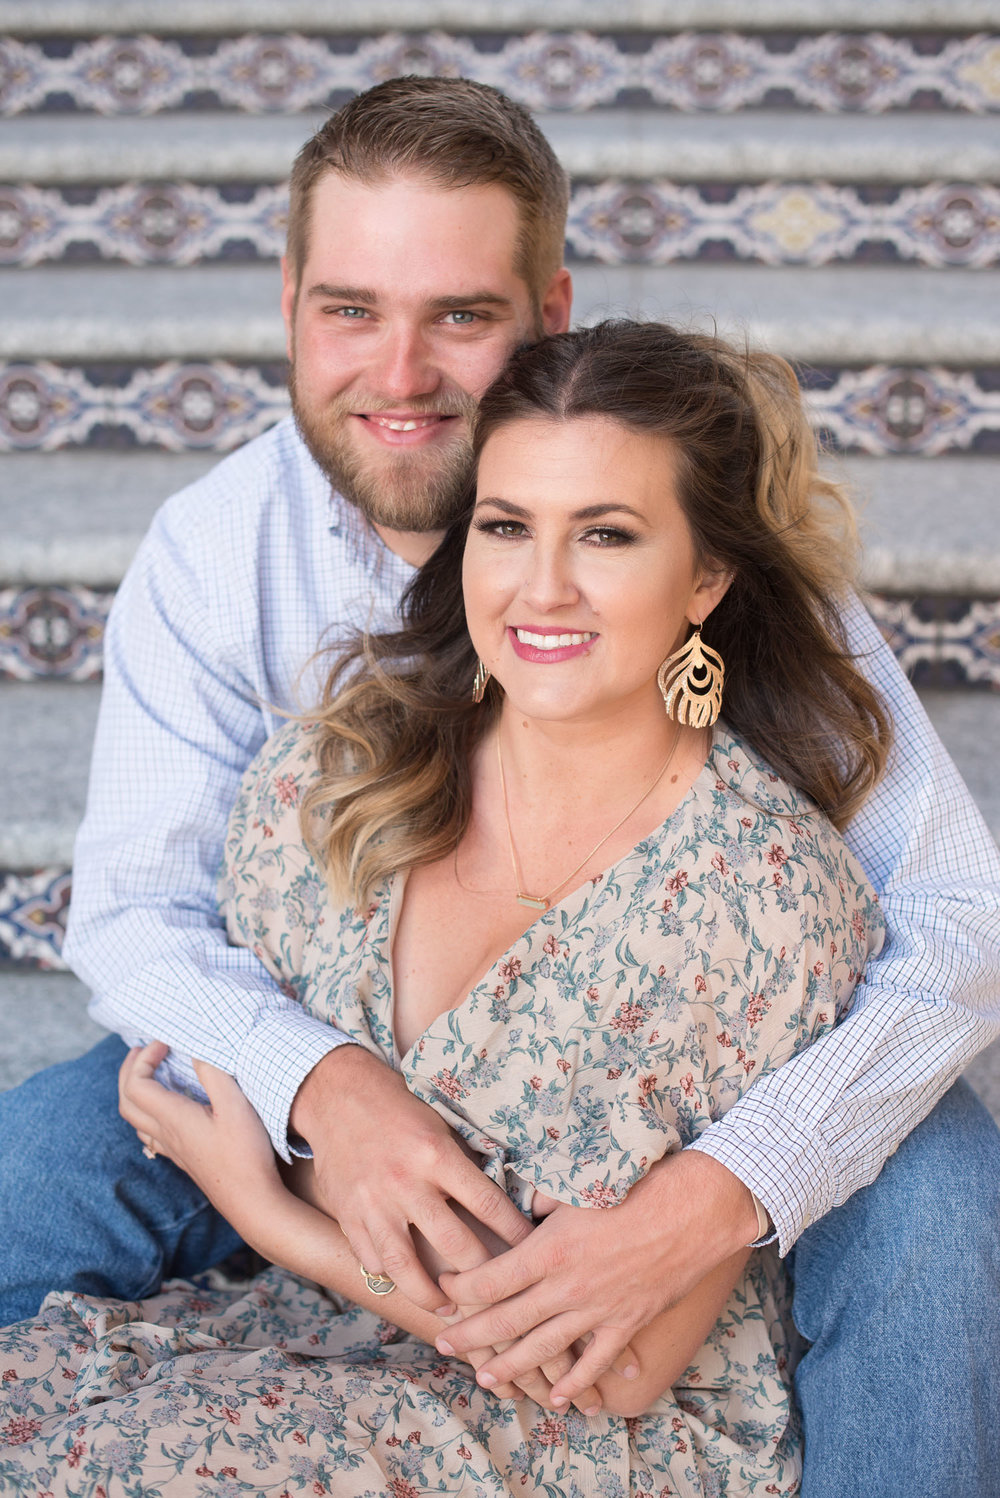 1 kansas city plaza tile stairs engagement session.jpg